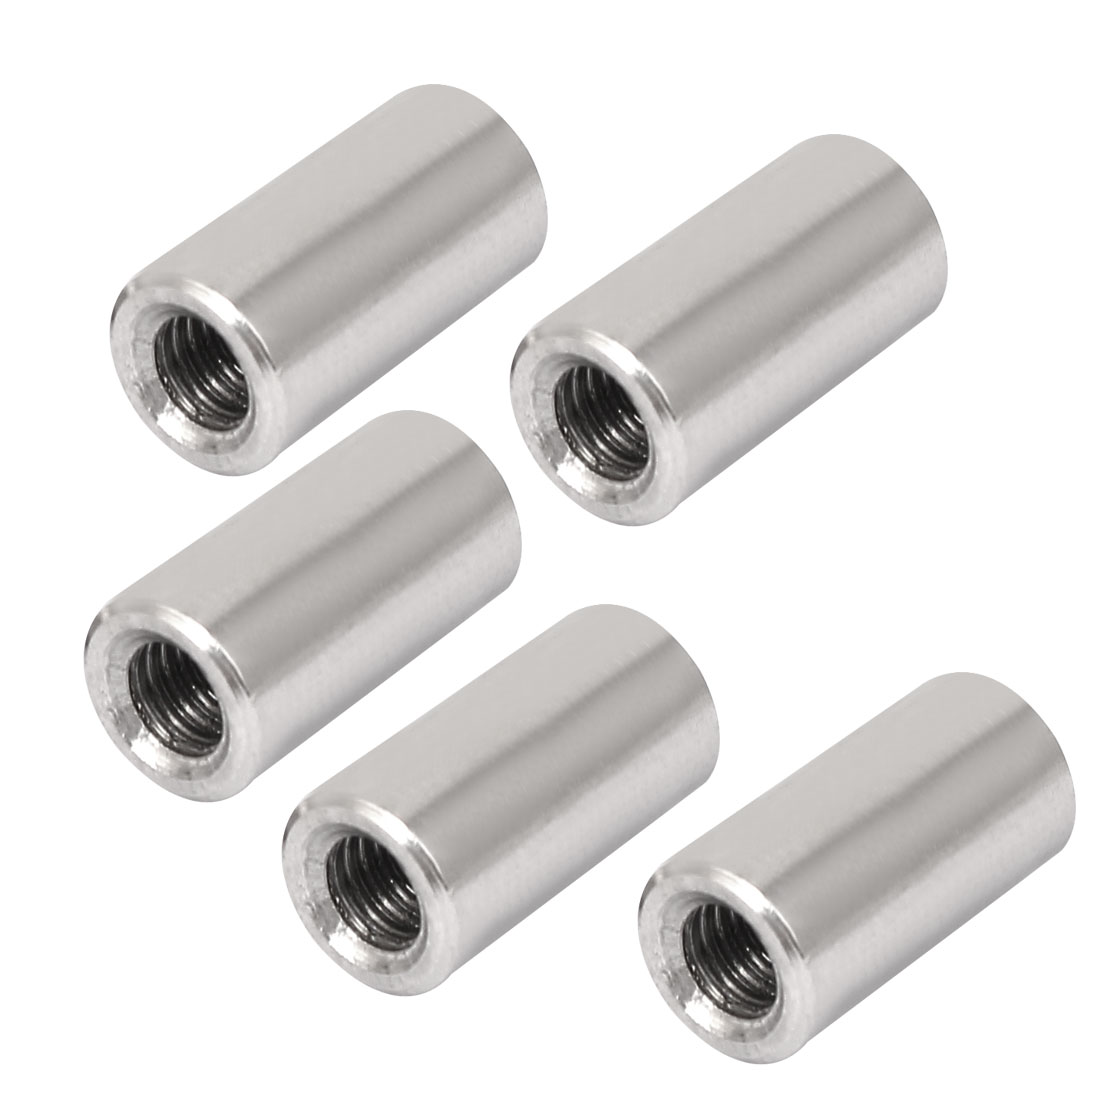 M6 Rose Joint Adapter Threaded Rod Bar Stud Round Coupling Connector Nuts 5pcs